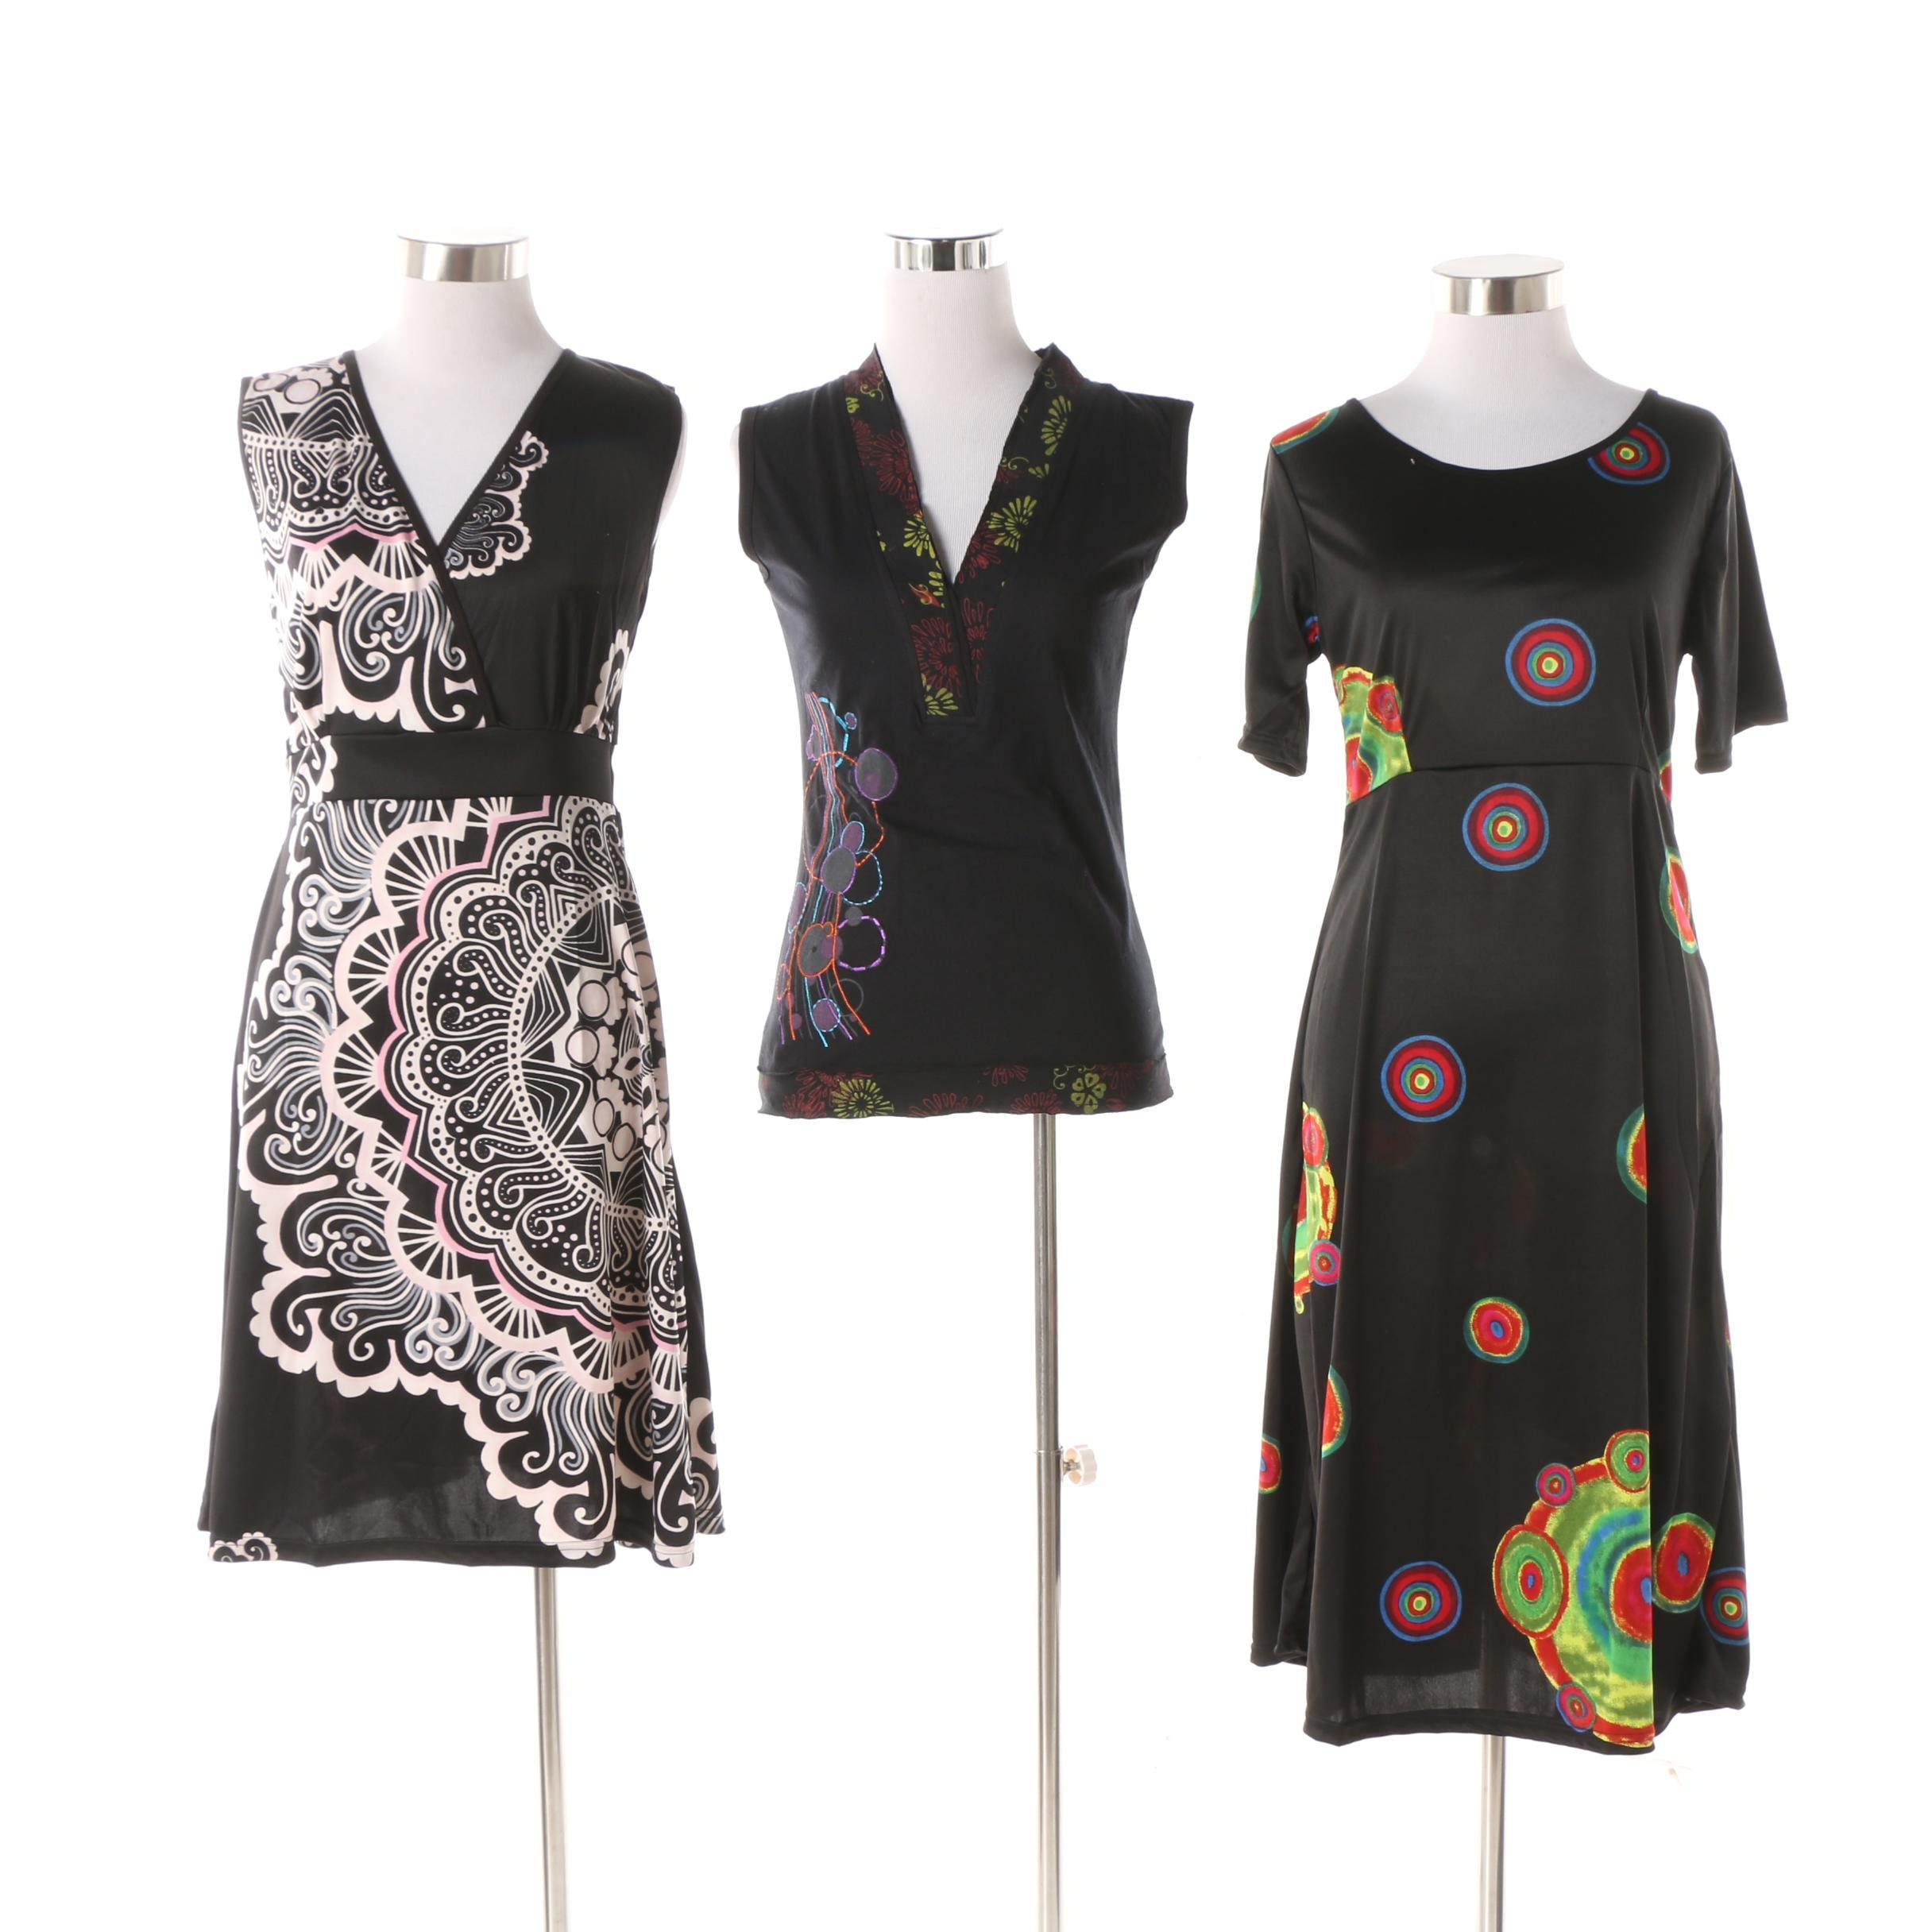 Aller Simplement Medallion and Abstract Stretch Dresses and Top